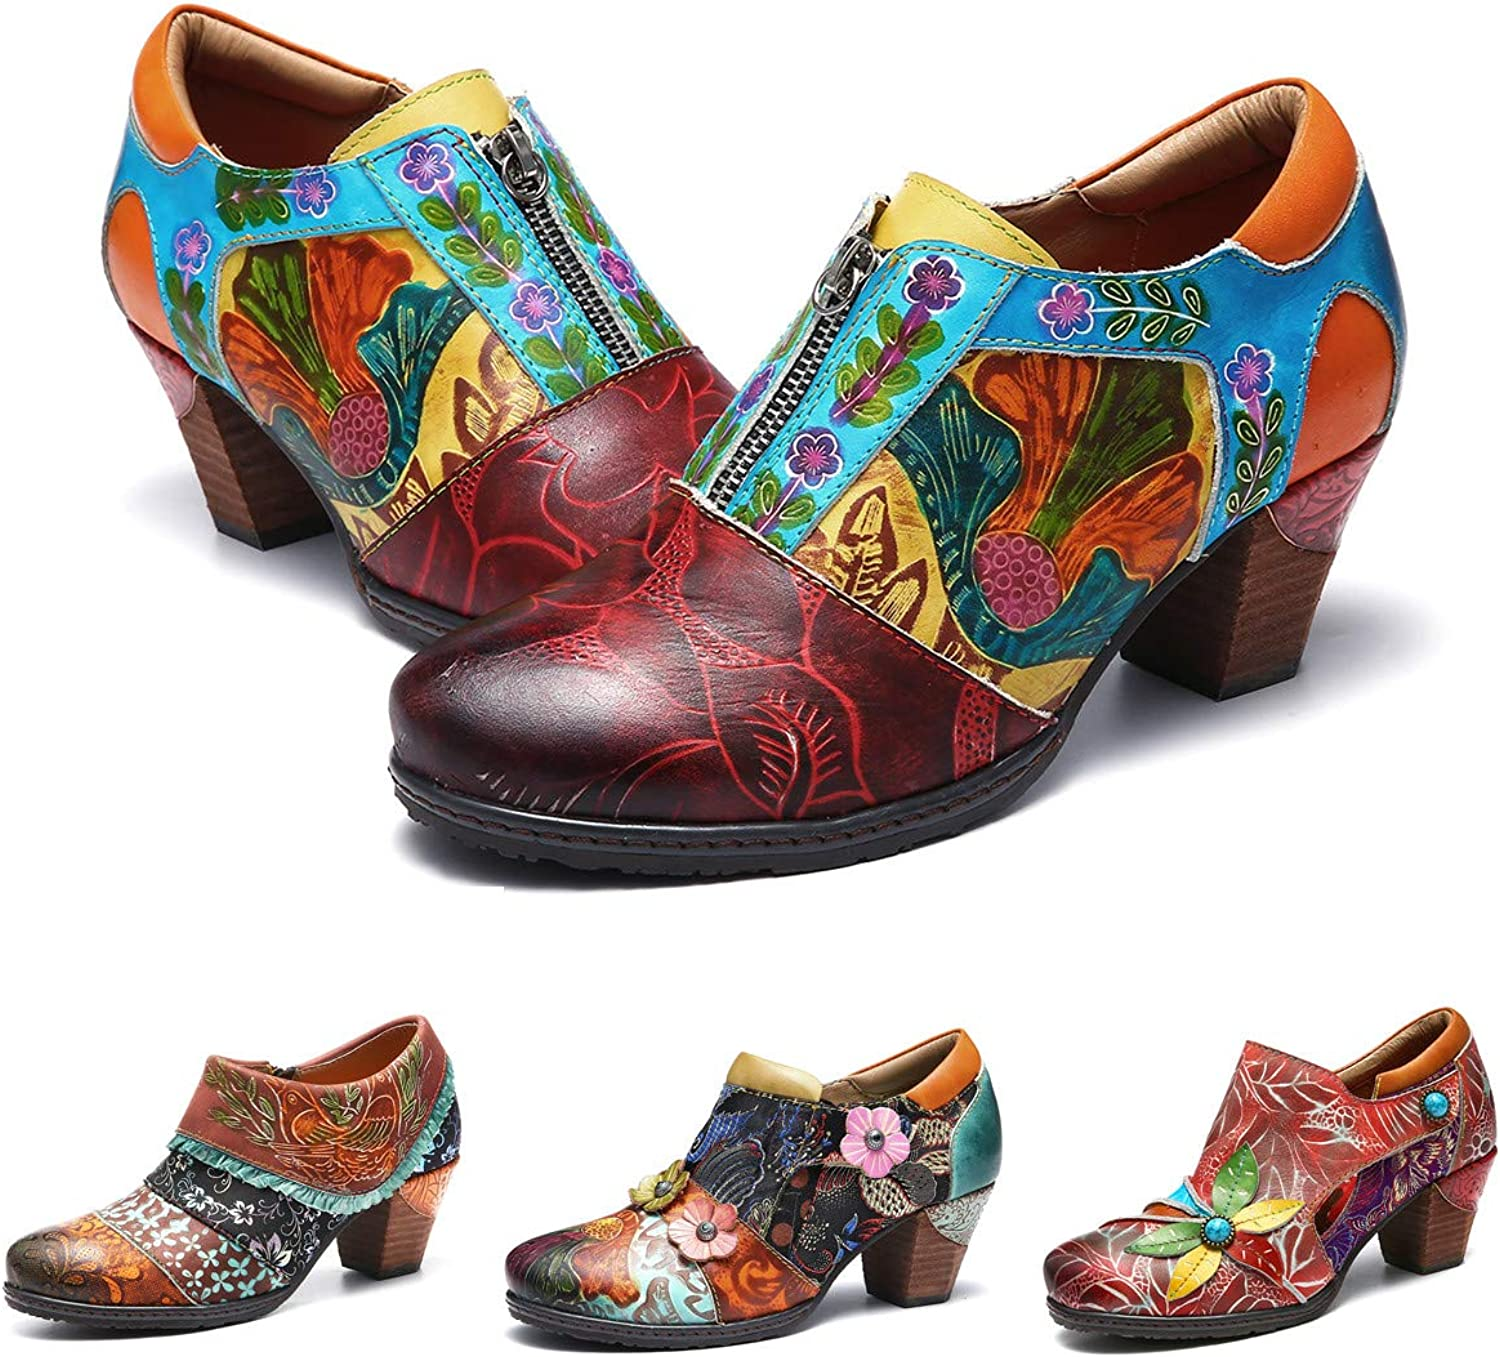 Gracosy Women Leather Ankle Boots, Ladies Mid Block Heel Mary Jane Zipper shoes Vintage Handmade Splicing Pattern shoes